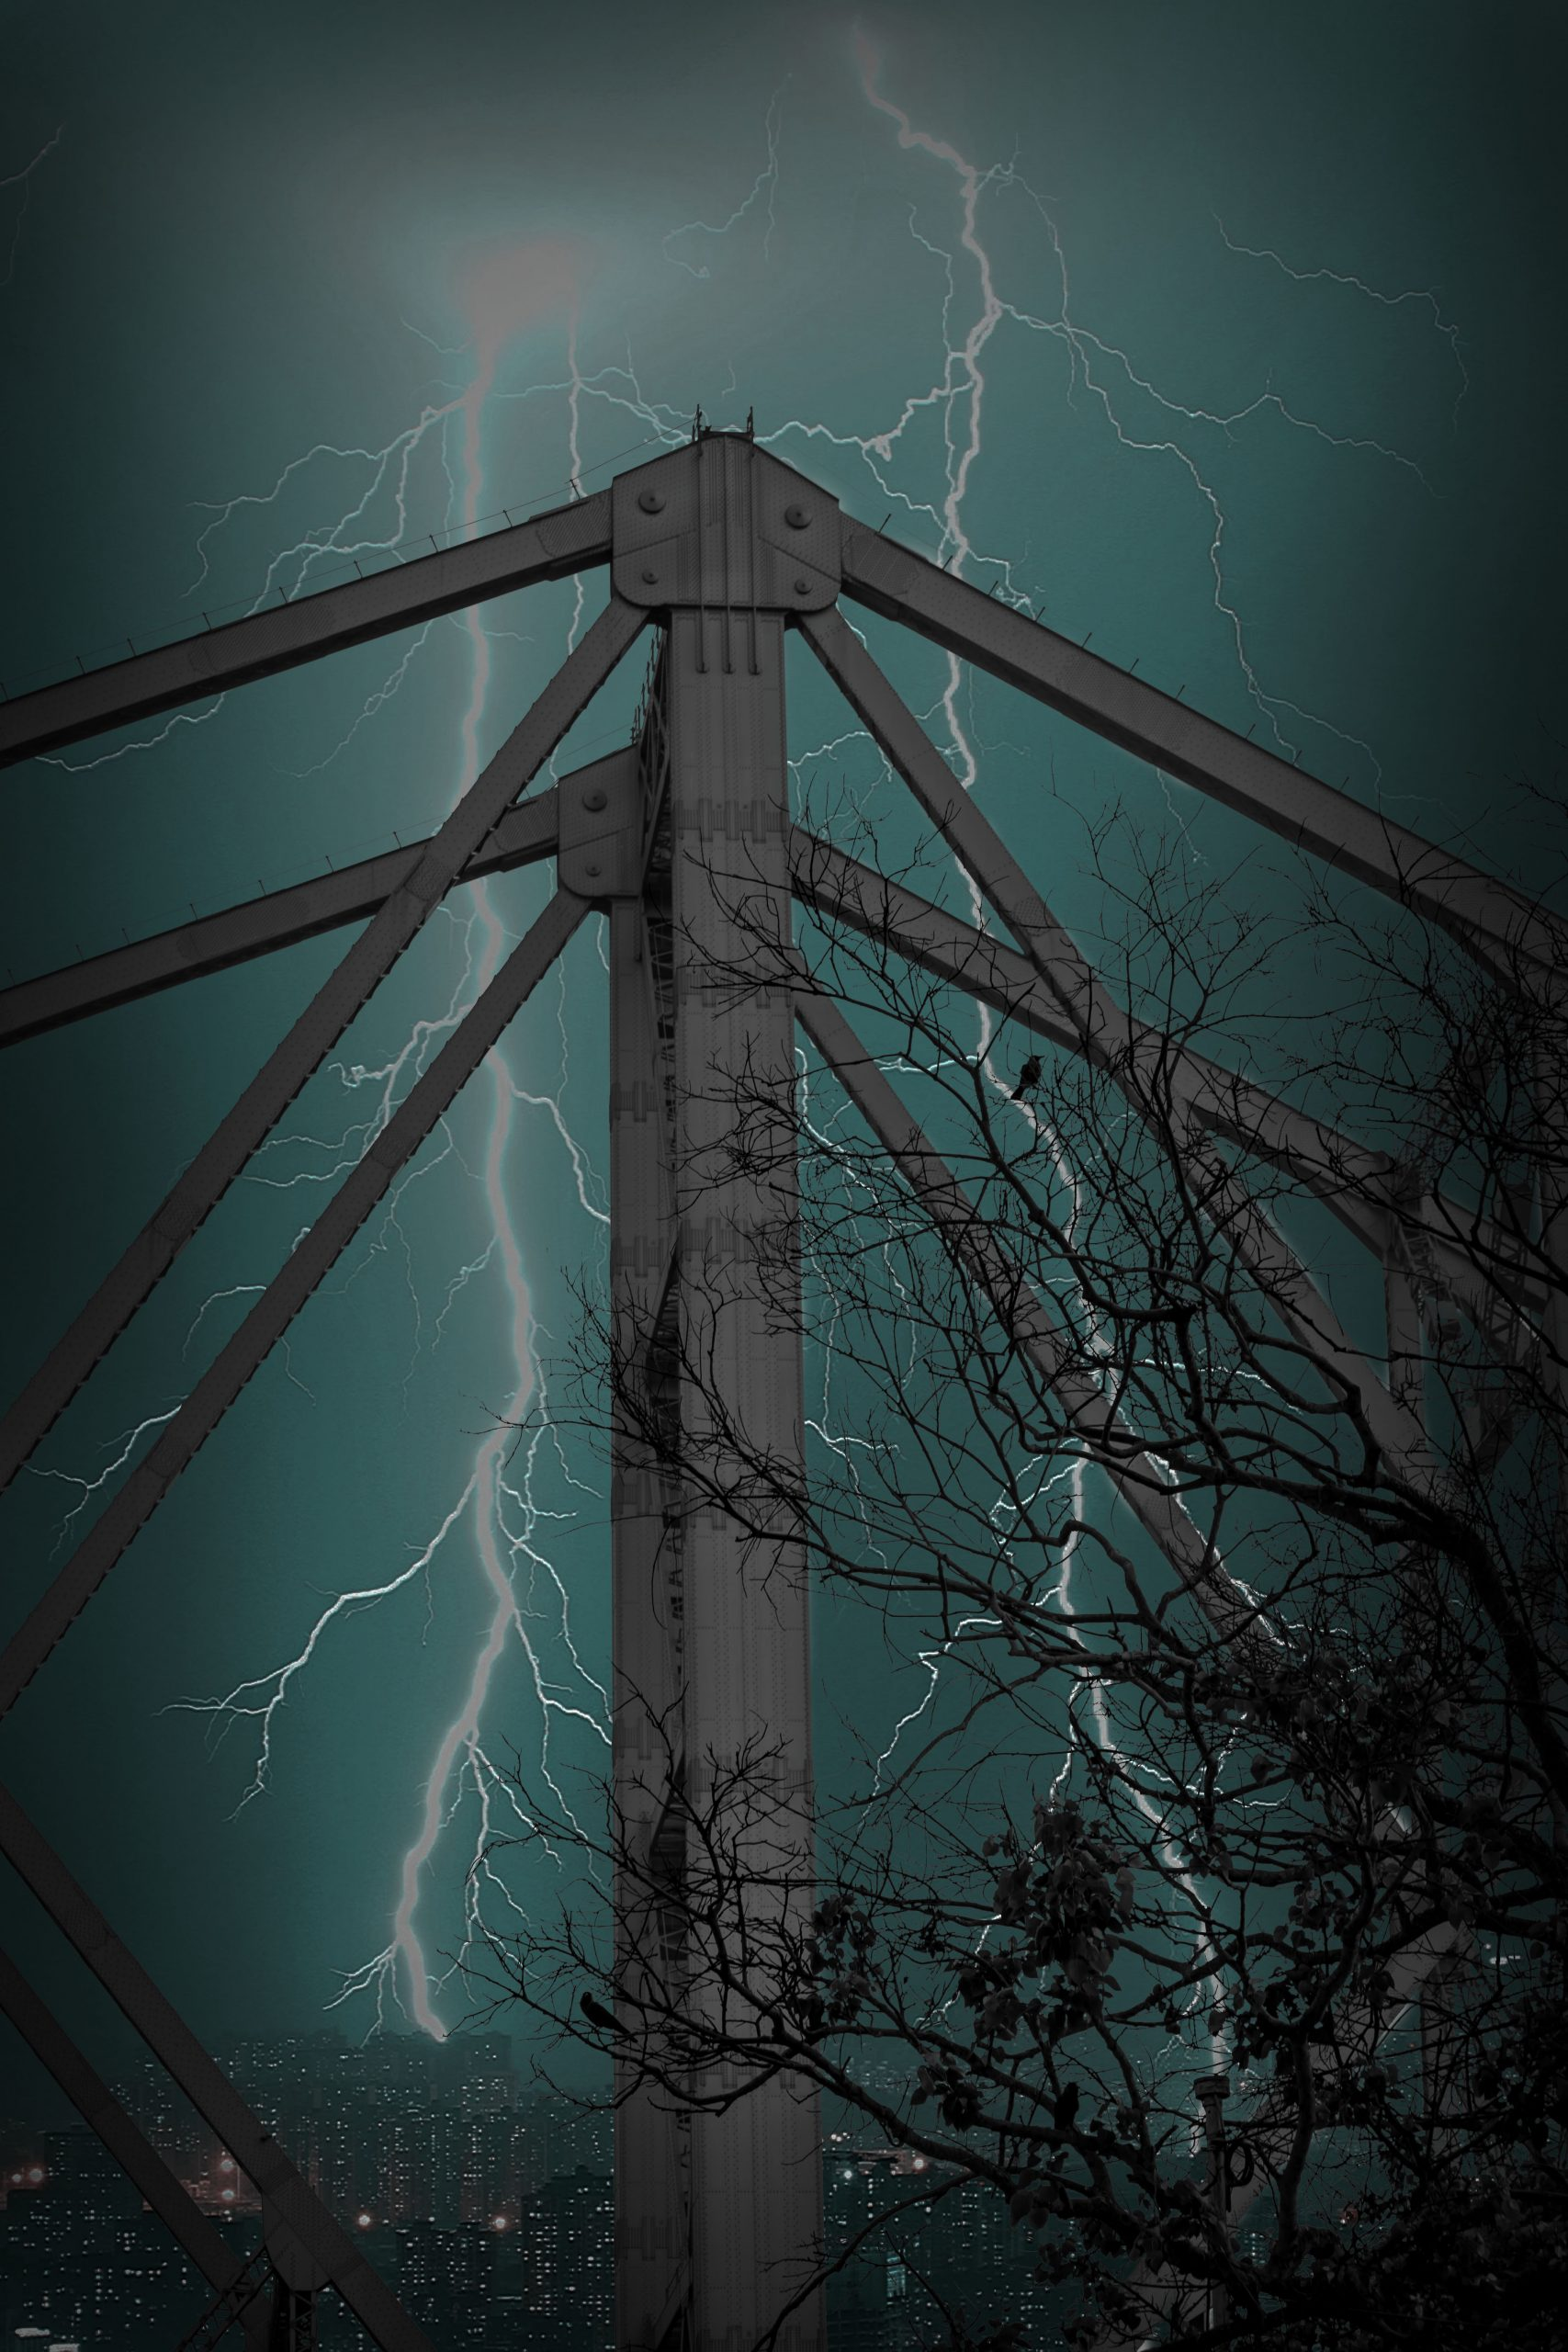 Lightening behind a pole